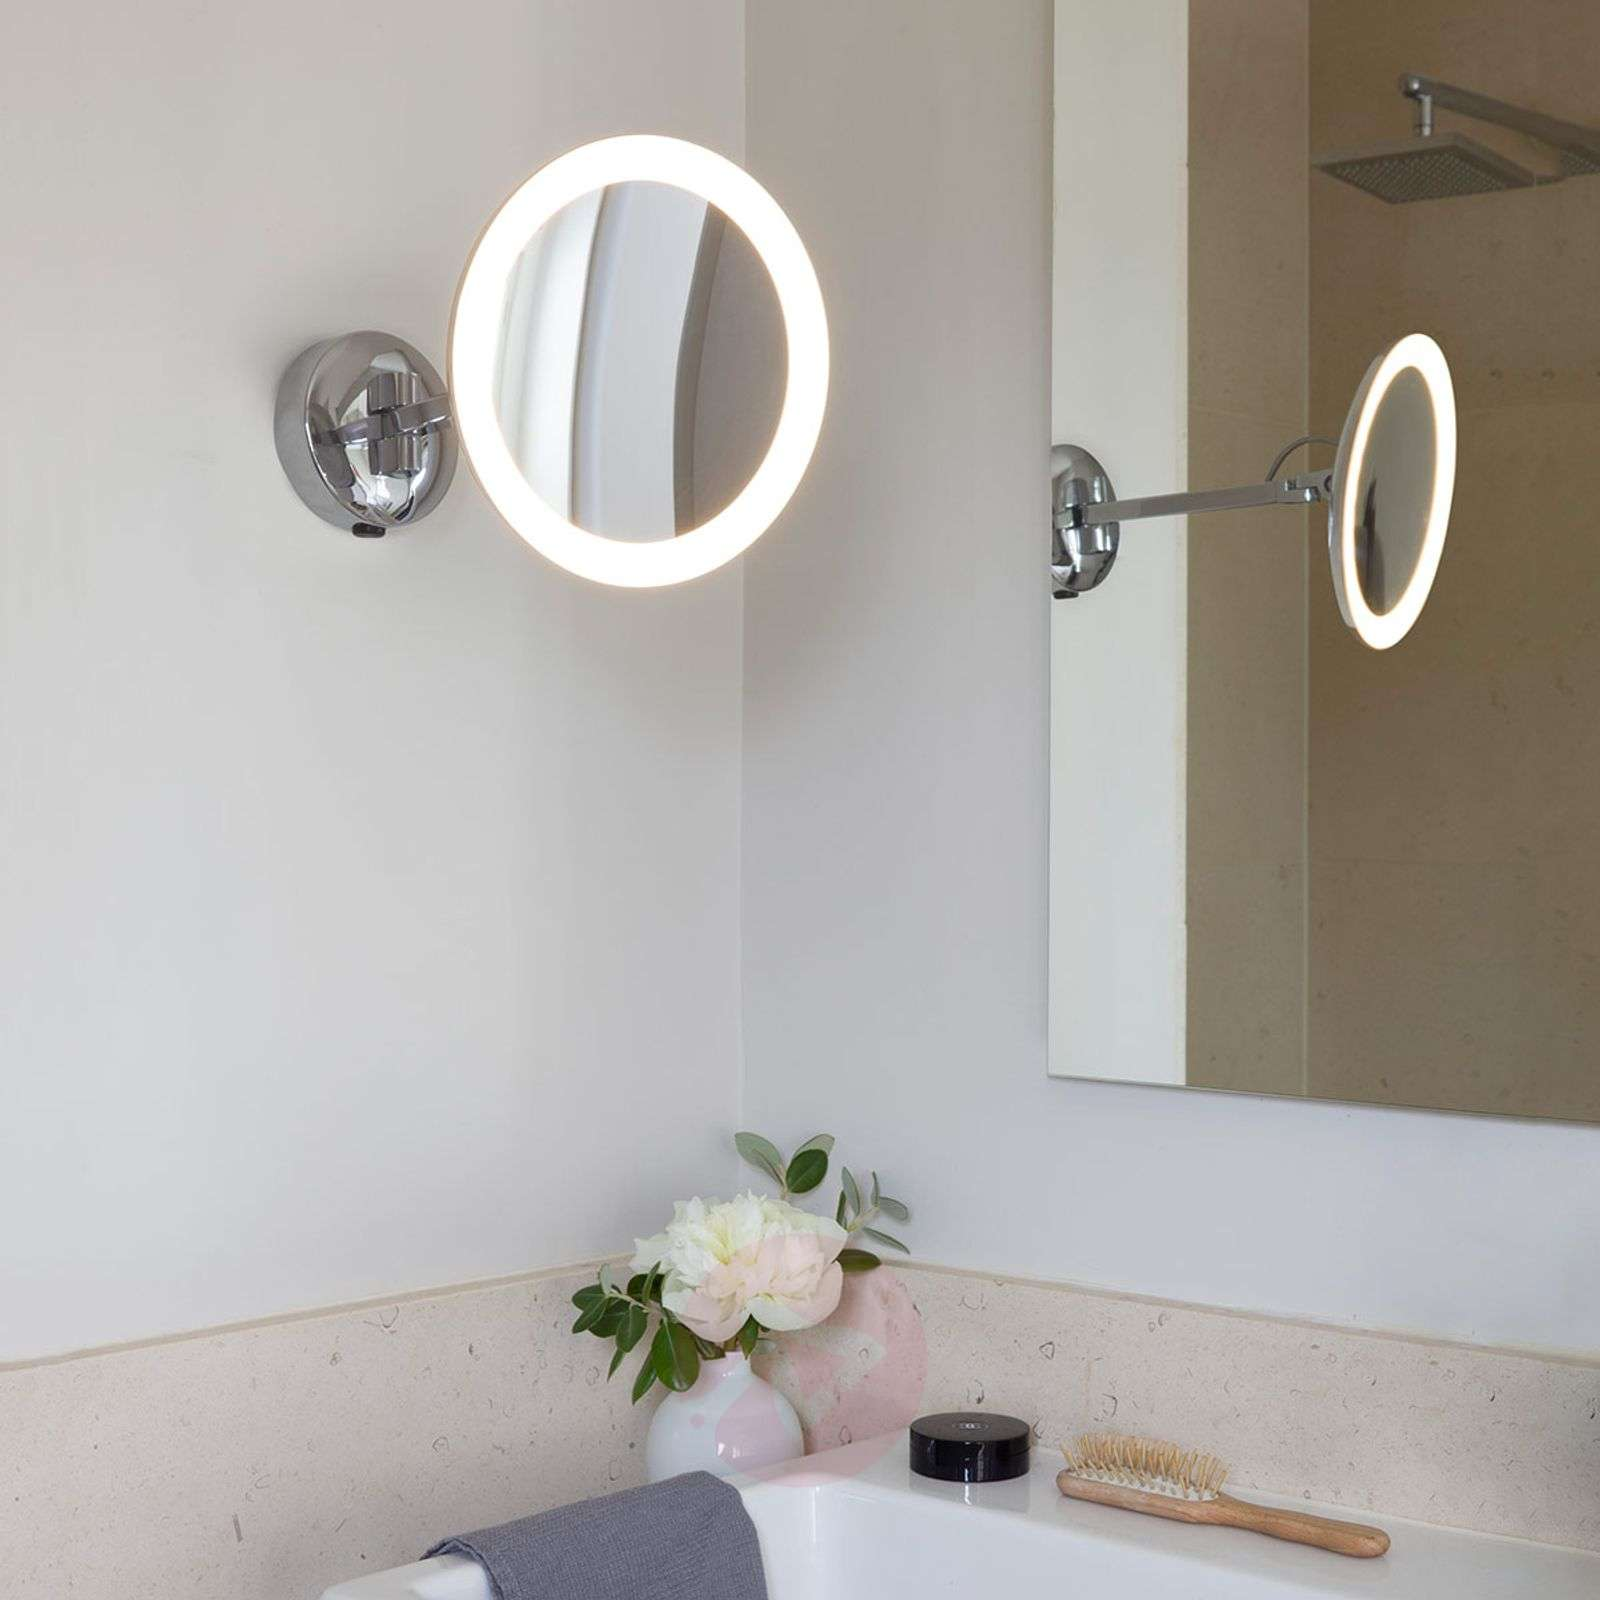 Illuminated wall mirror Mascali with LED-1020532-05